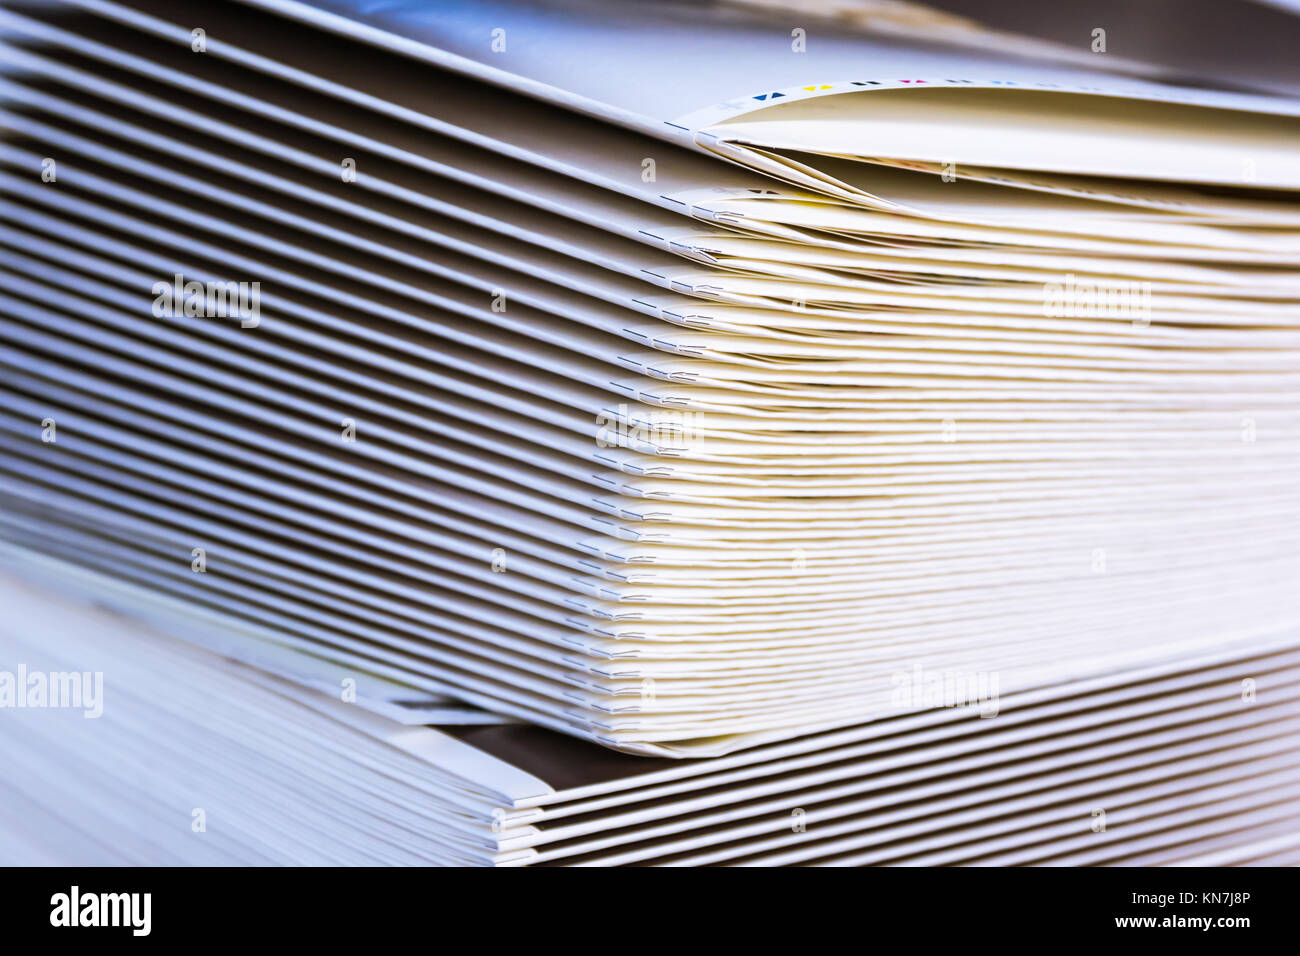 Folded Stack of Paper Signatures Output Media Industry Design Sheets Book Production Commercial - Stock Image